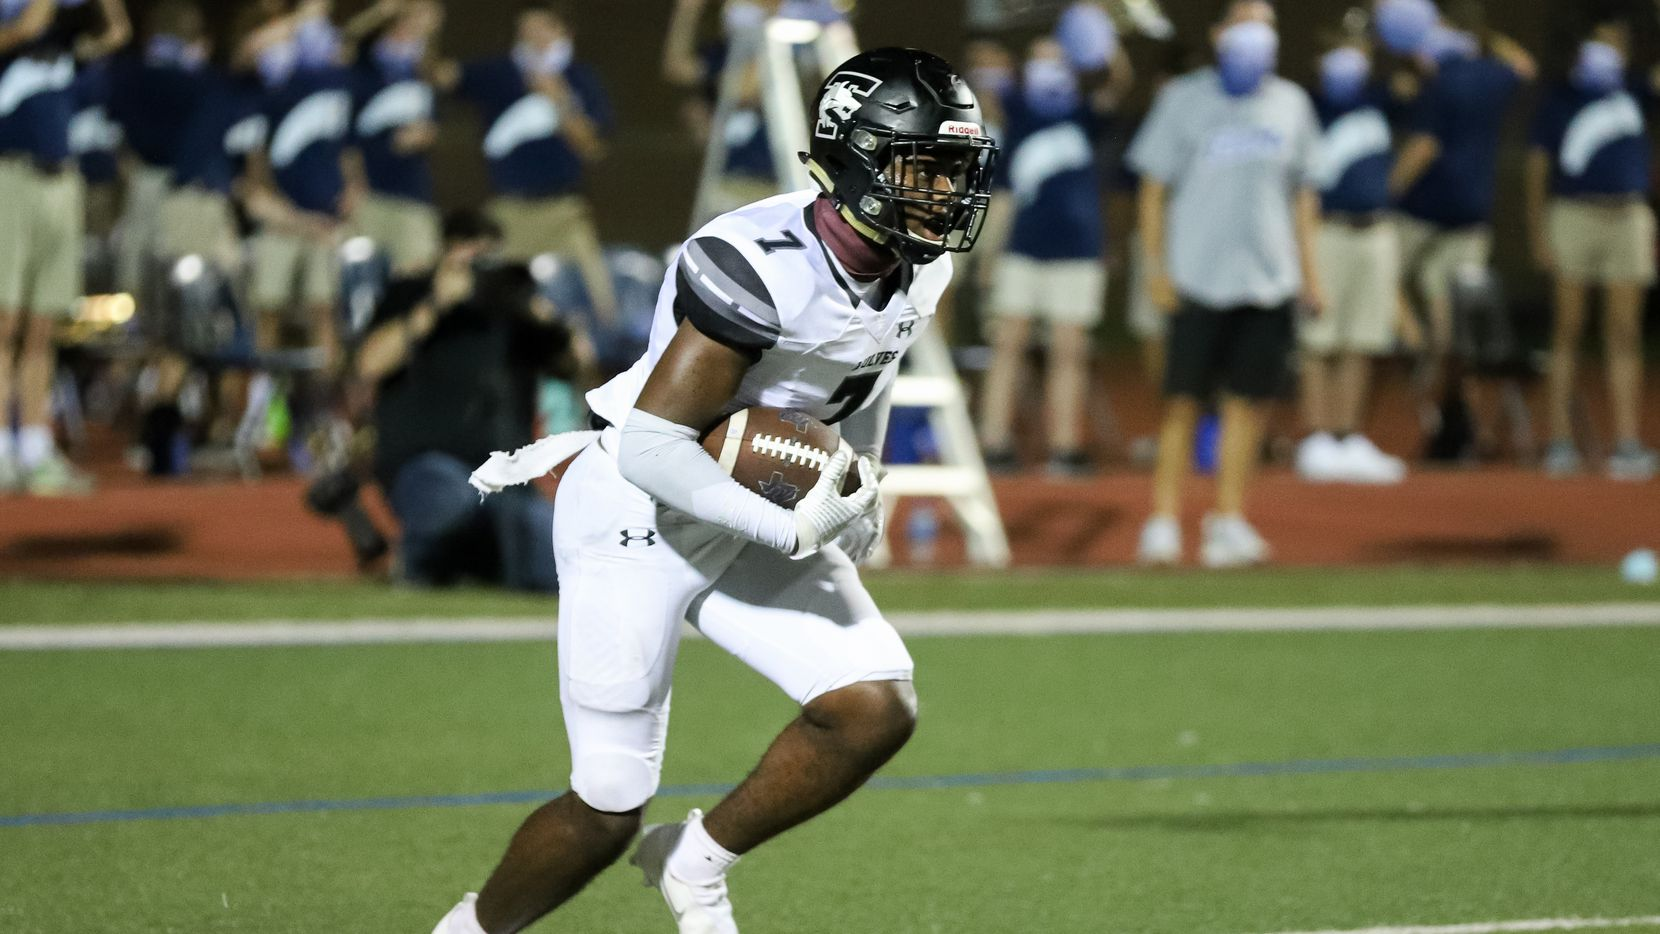 Mansfield Timberview defensive back Landon Hullaby (7) returns a kickoff against Flower Mound during the second half at Neal E. Wilson Stadium in Flower Mound, Friday, October 9, 2020.